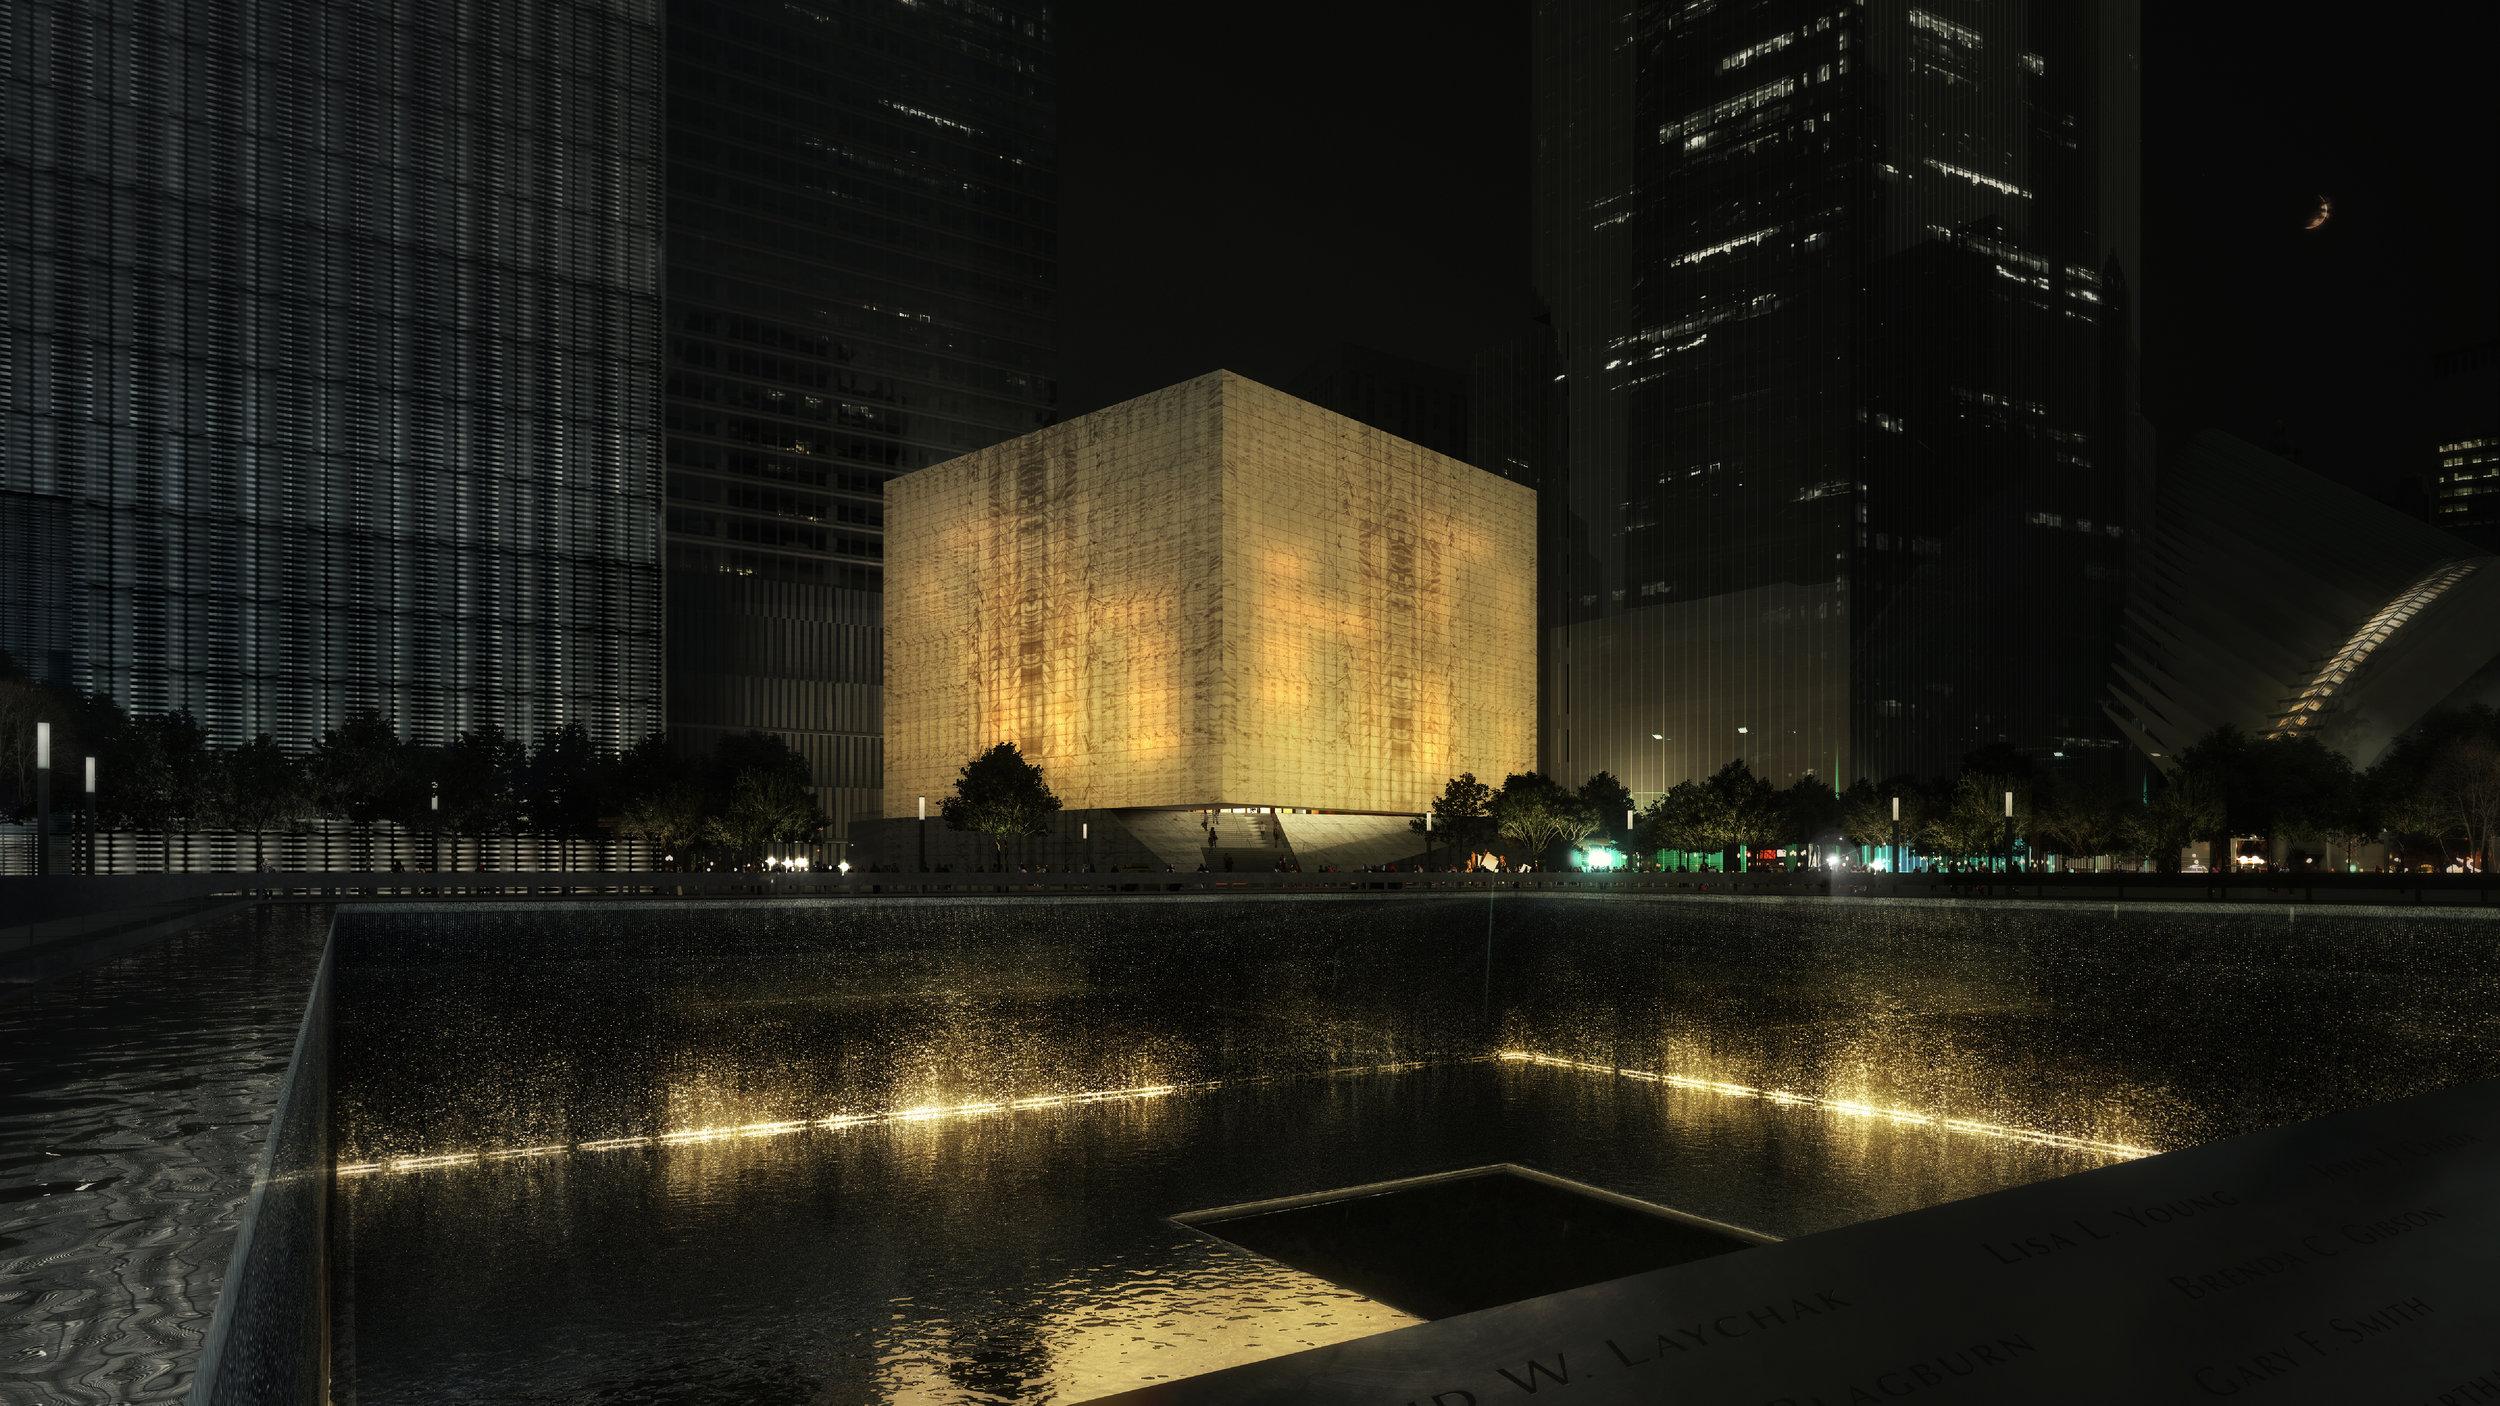 NIGHT RENDER FROM SOUTHWEST (MEMORIAL)